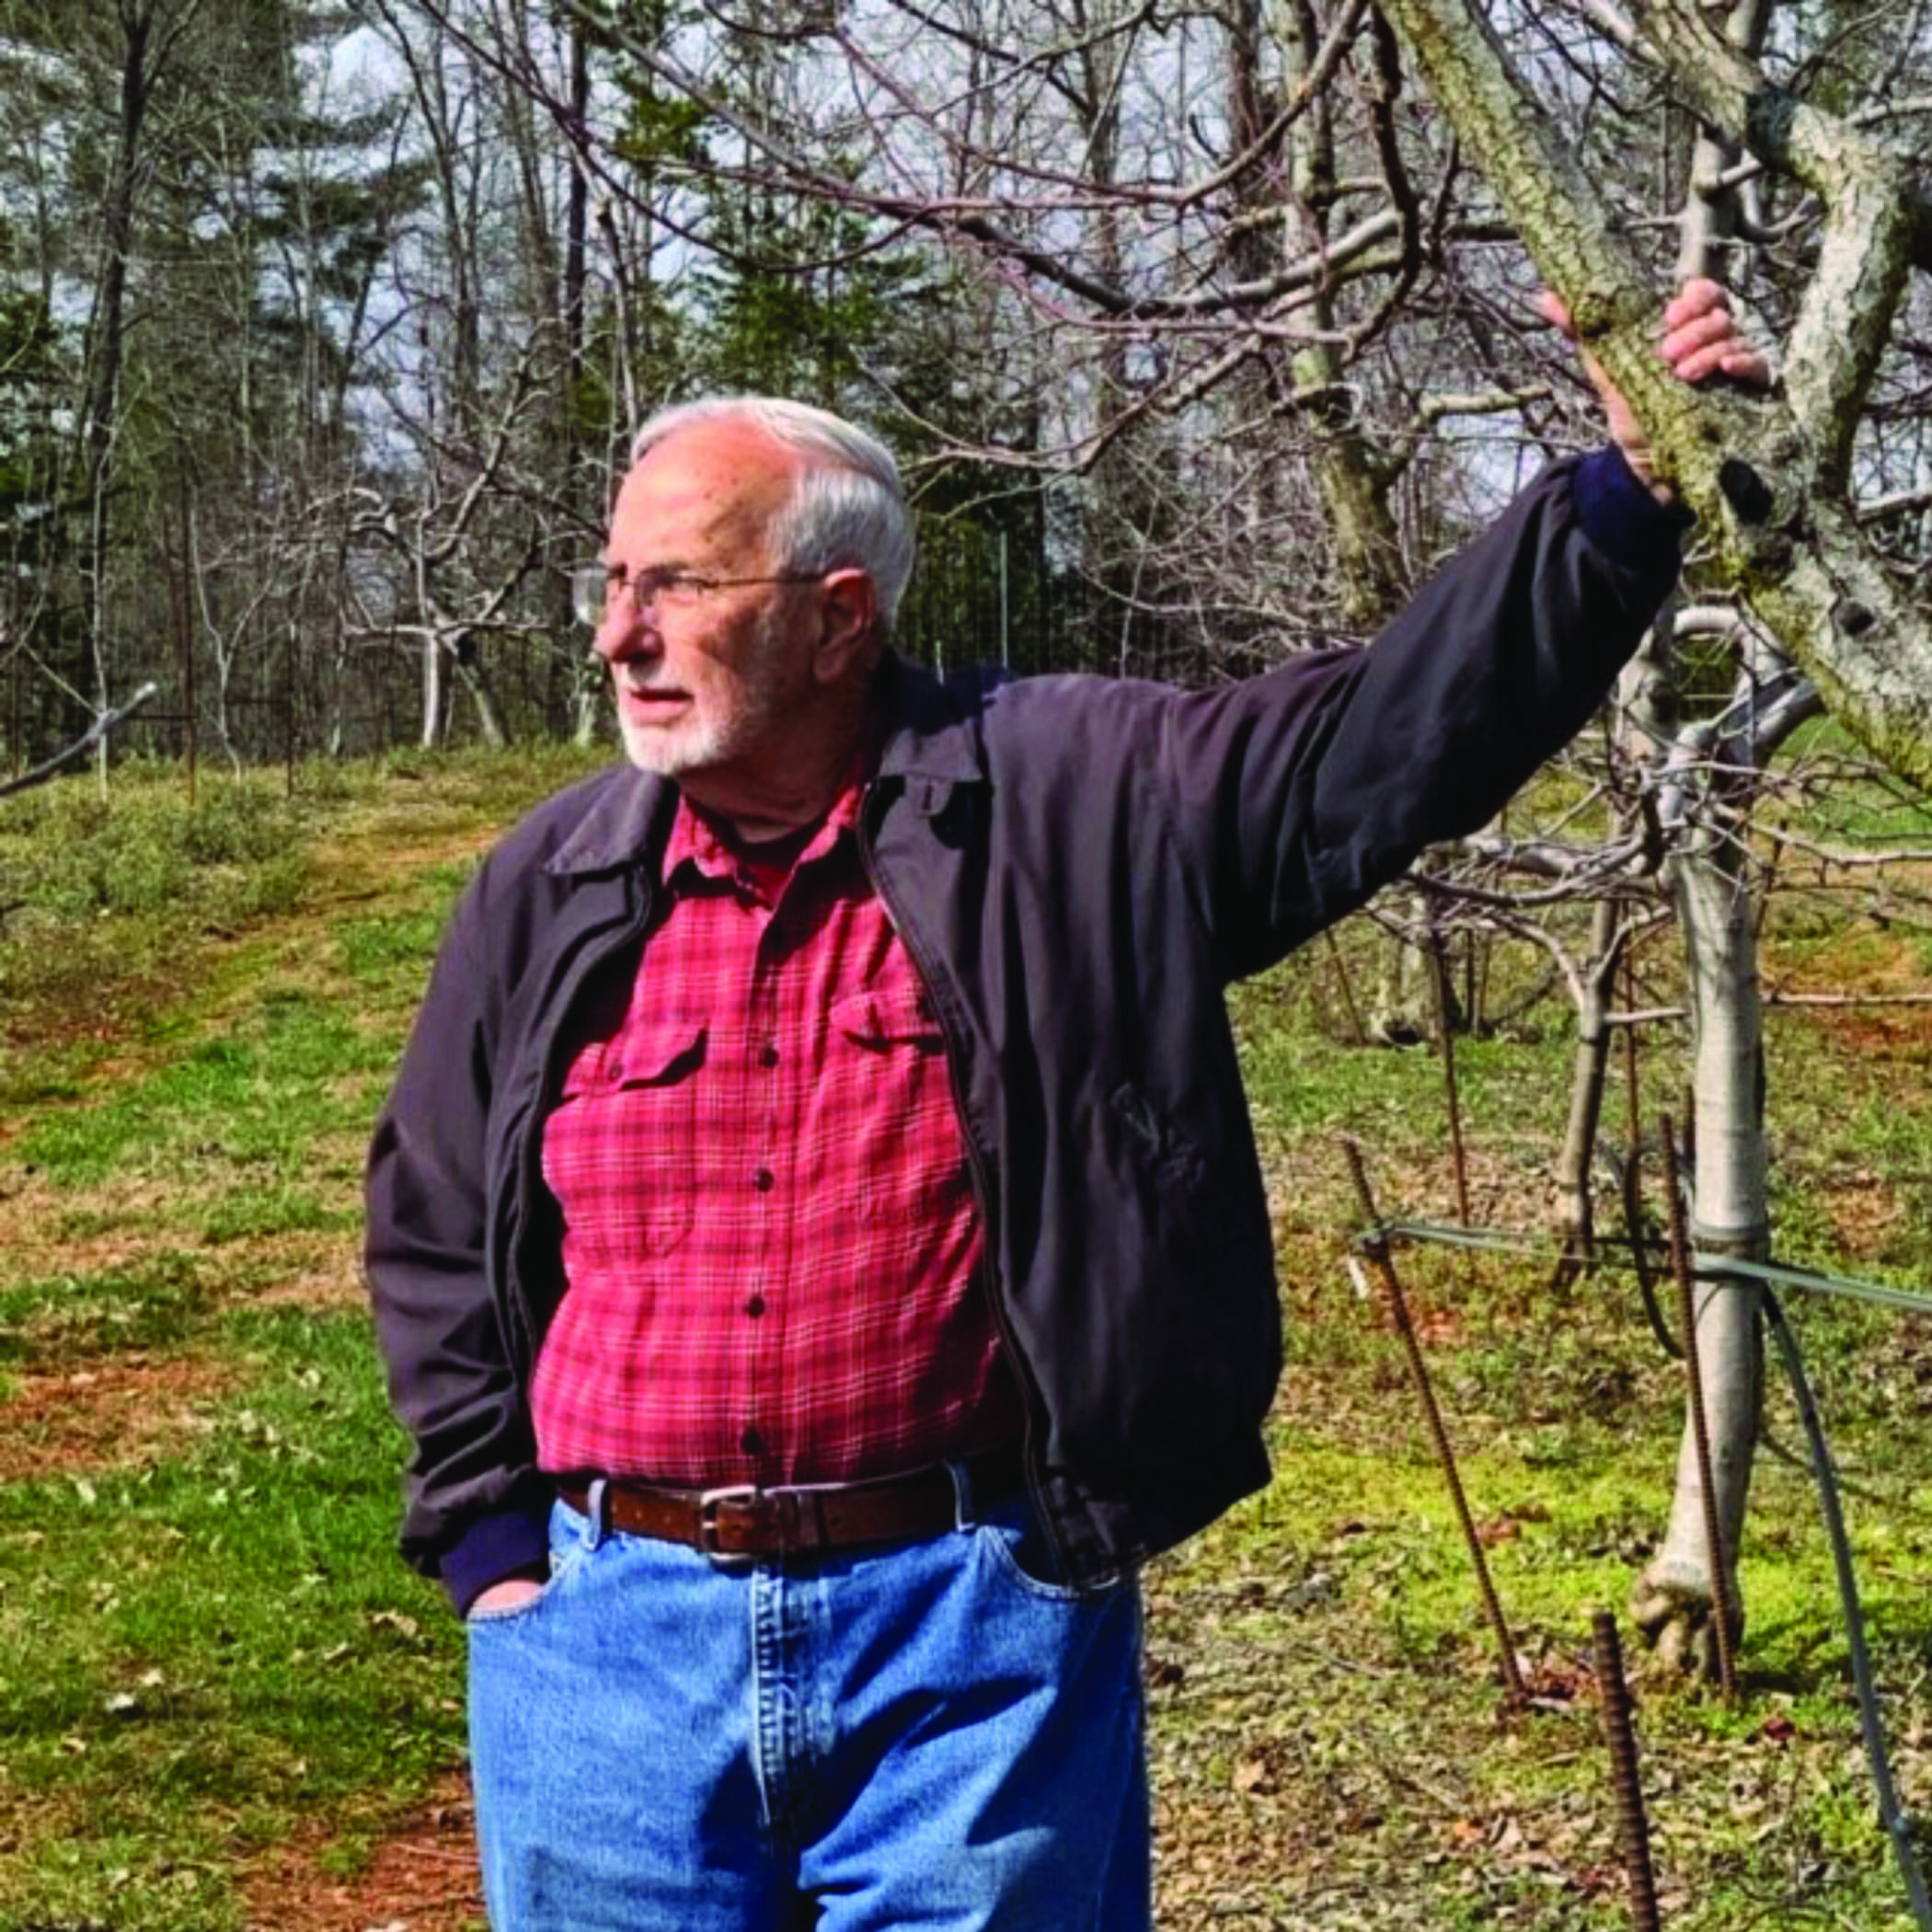 Lee Calhoun, with white hair and beard, standing by an apple tree and grasping a limb